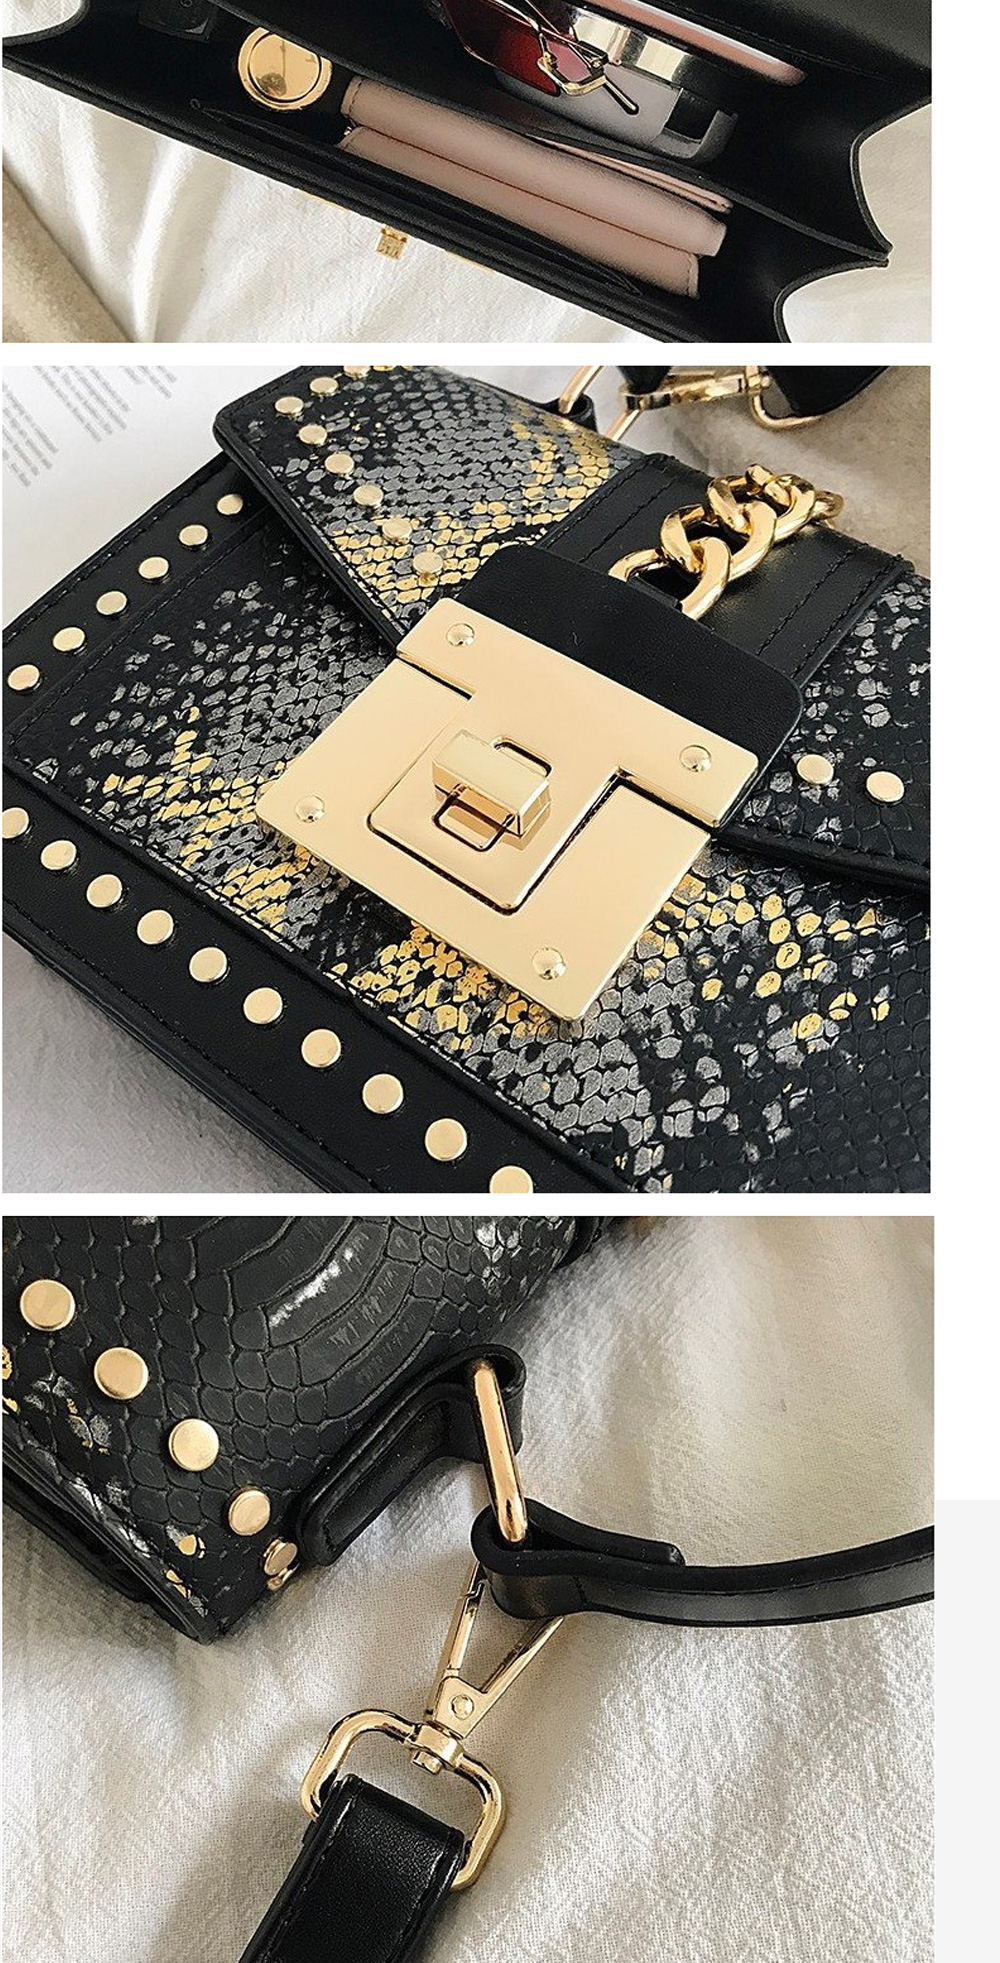 Fashion Snake Pattern Portable Small Female Bag 2020 New European And American Personality Atmospheric Messenger Shoulder Bag Wild Small Square Bag  4